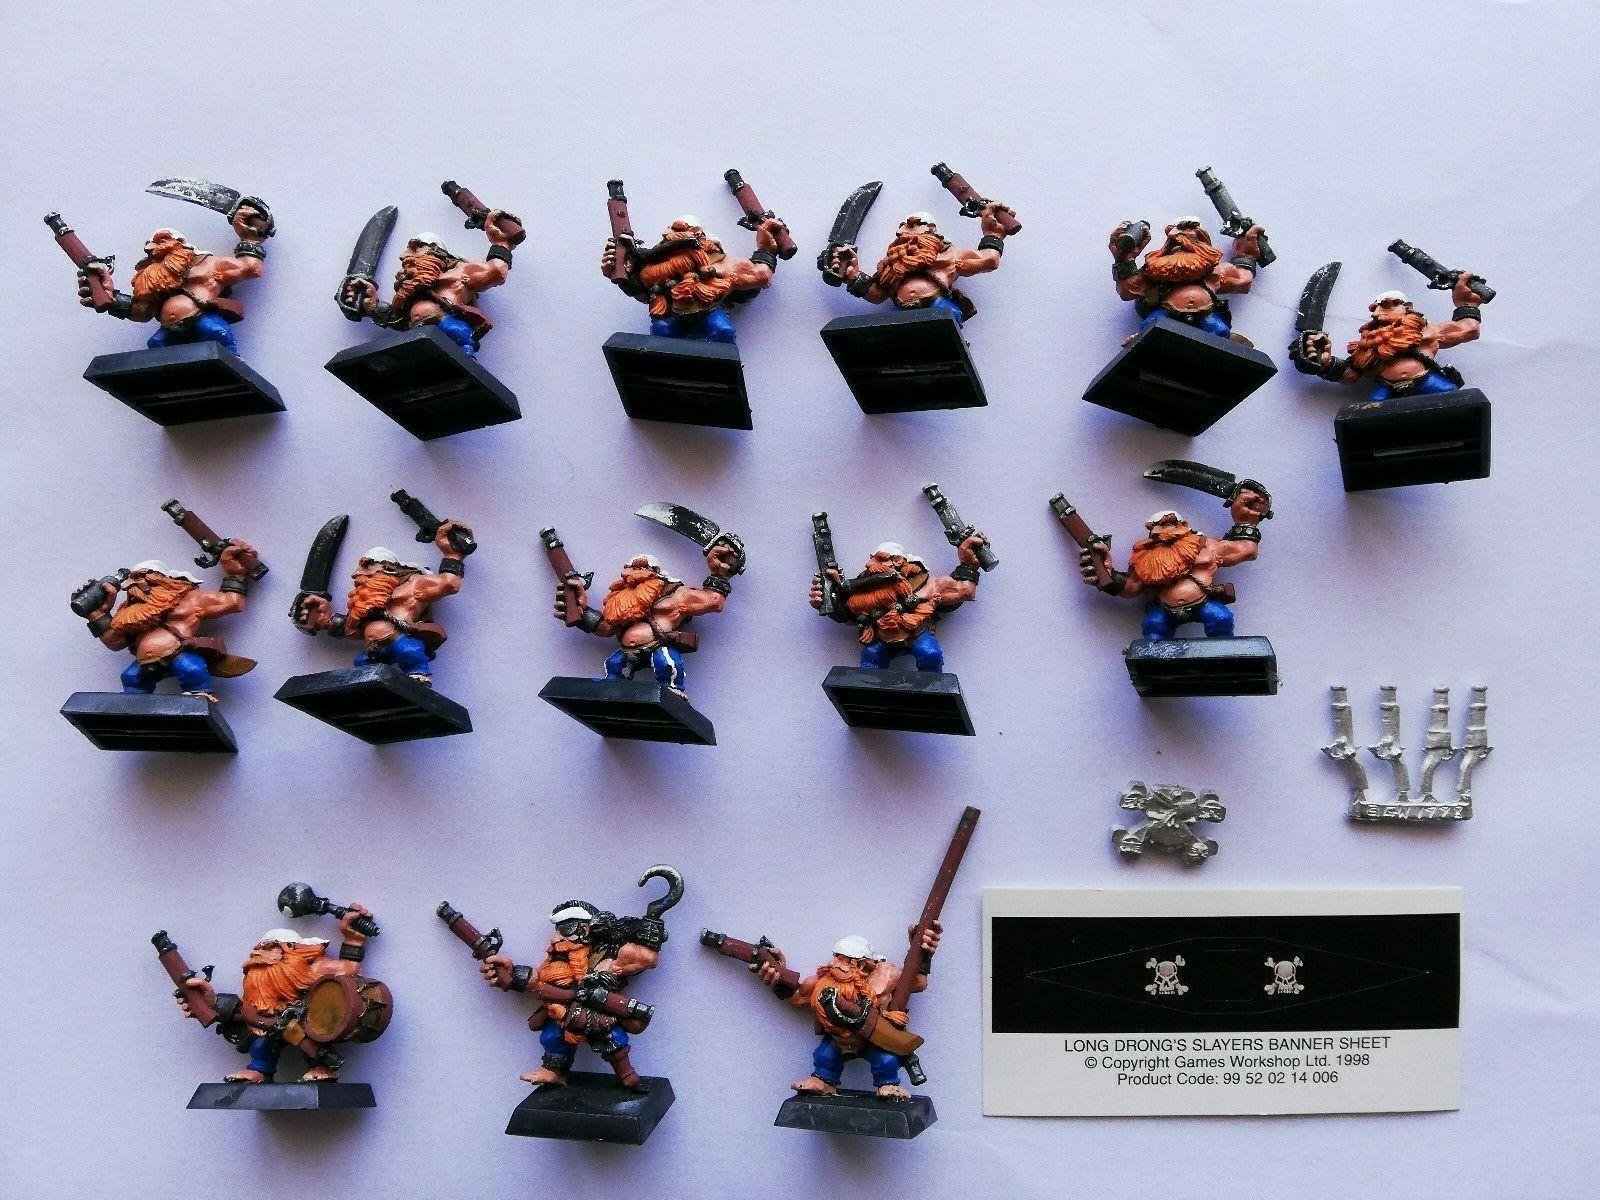 WARHAMMER - LONG DRONG PIRATE SLAYERS - REGIMENT OF REKNOWN 1998 - LARGE LOT